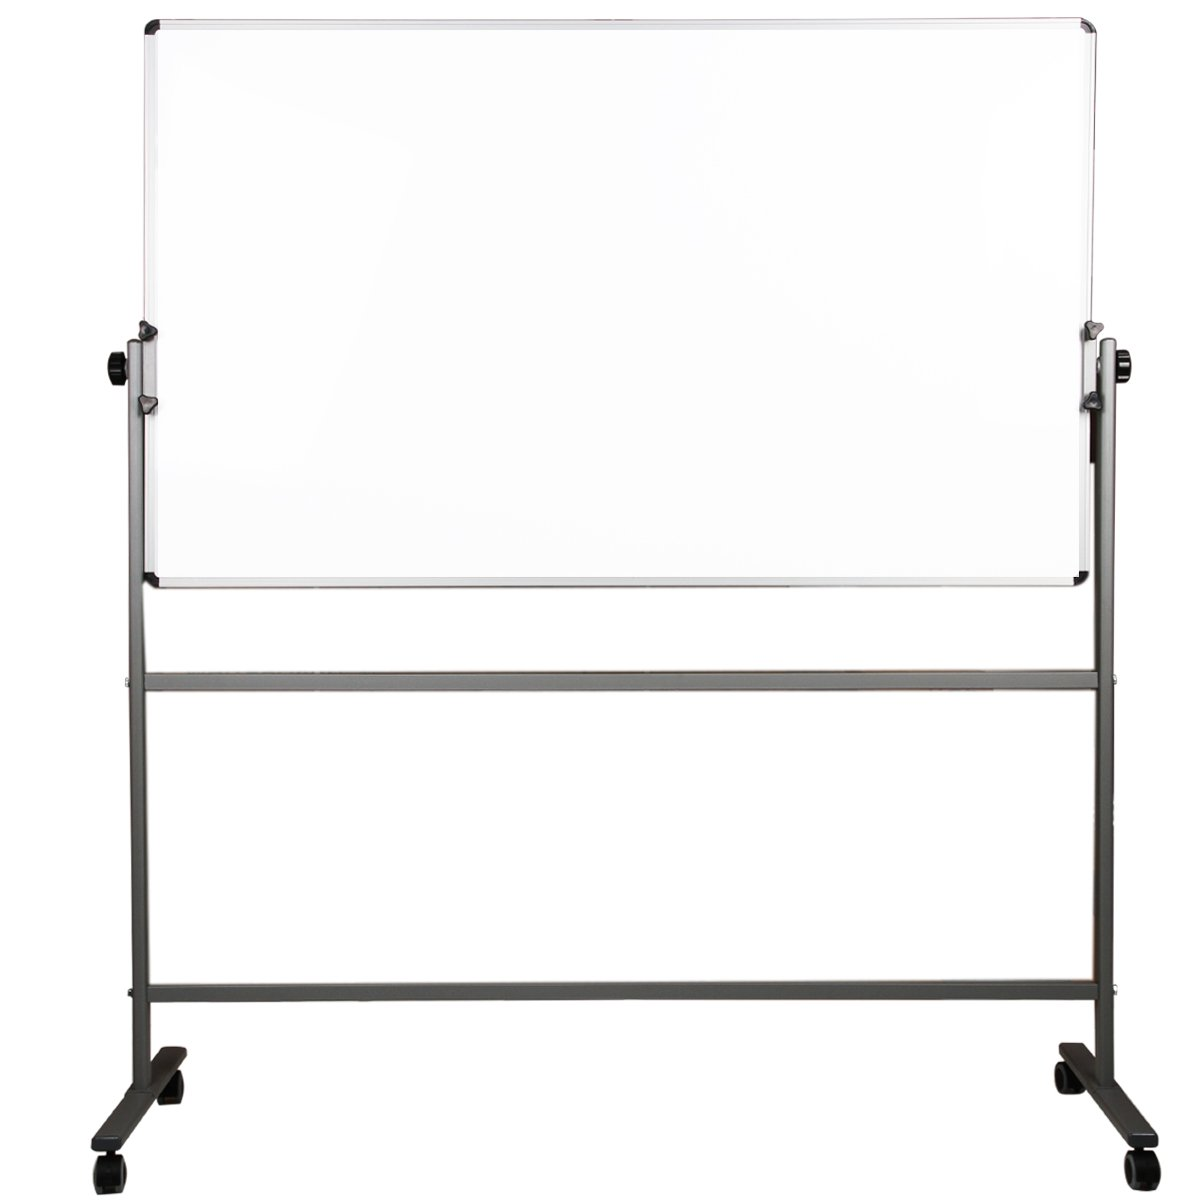 Double Sided Magnetic Whiteboard With Metal Stand & Wheels 90 X 120 Cm